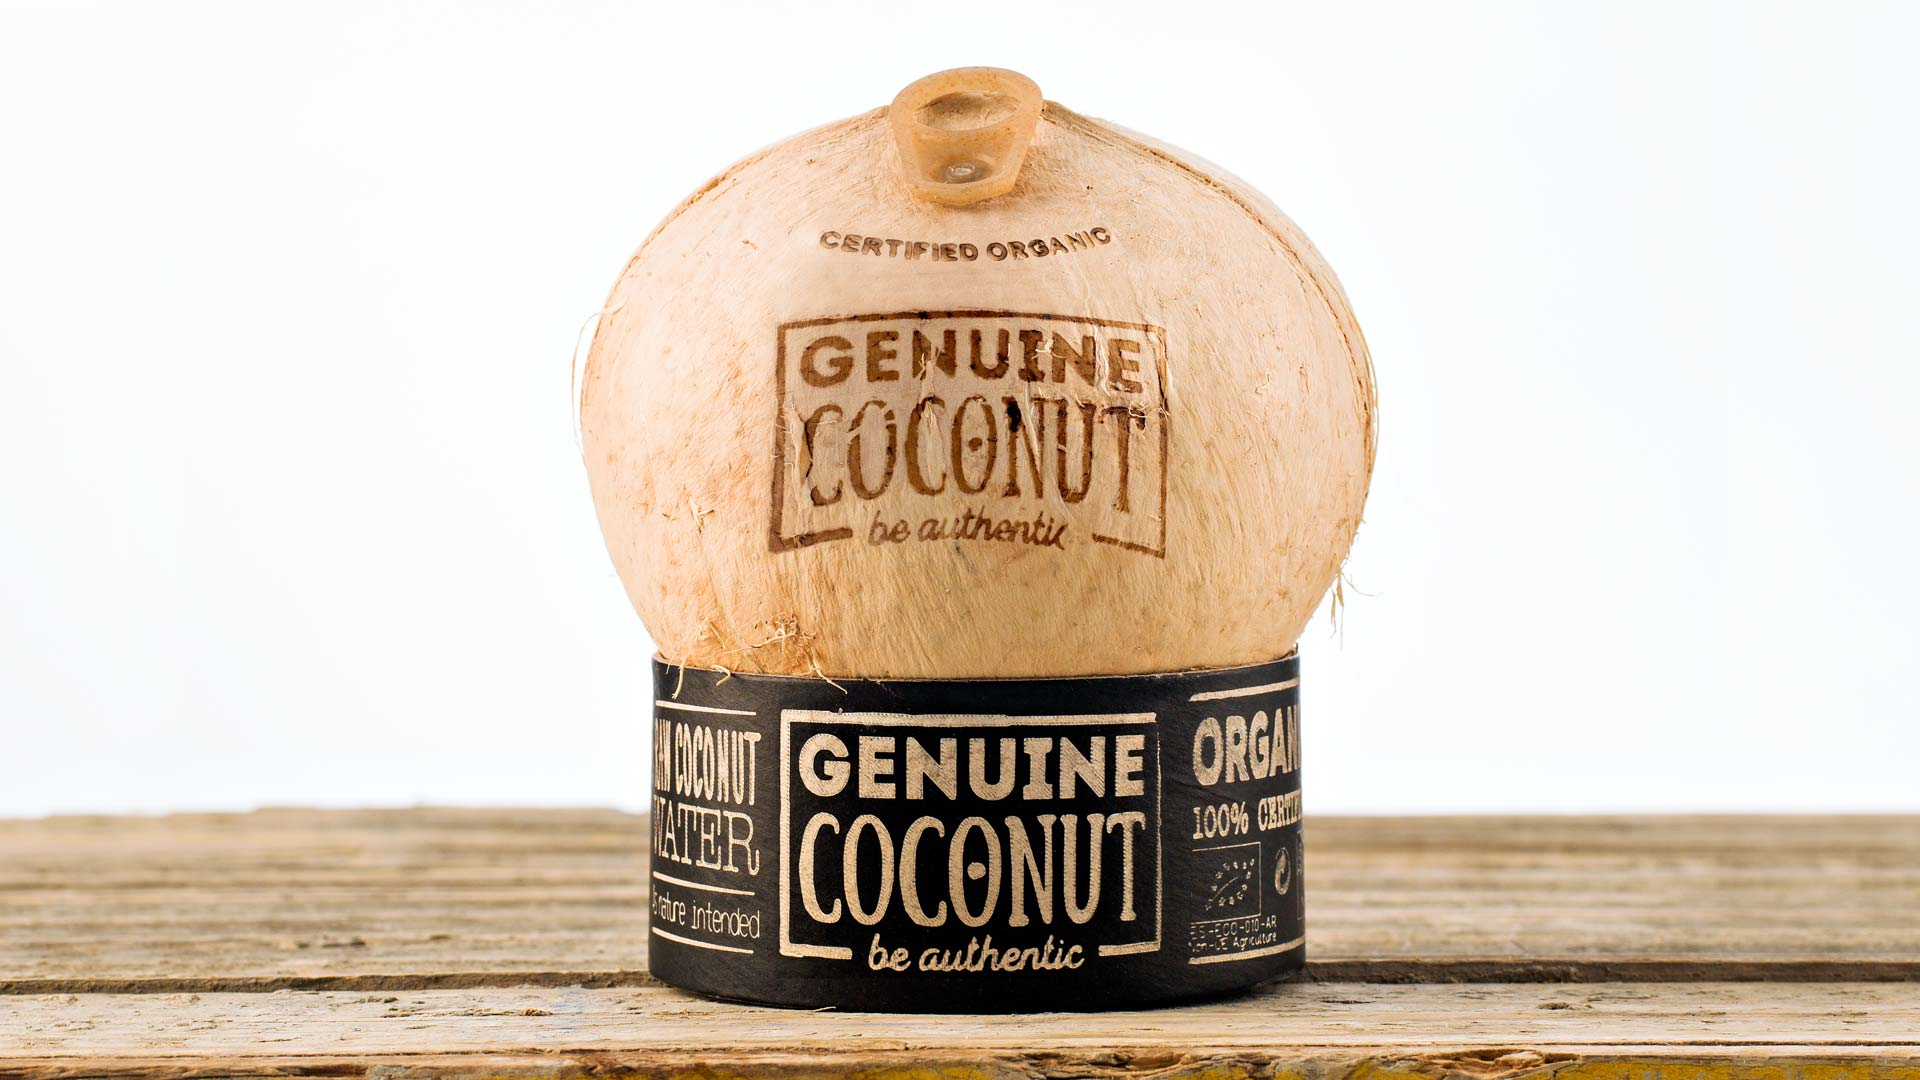 genuine coconut coconut water